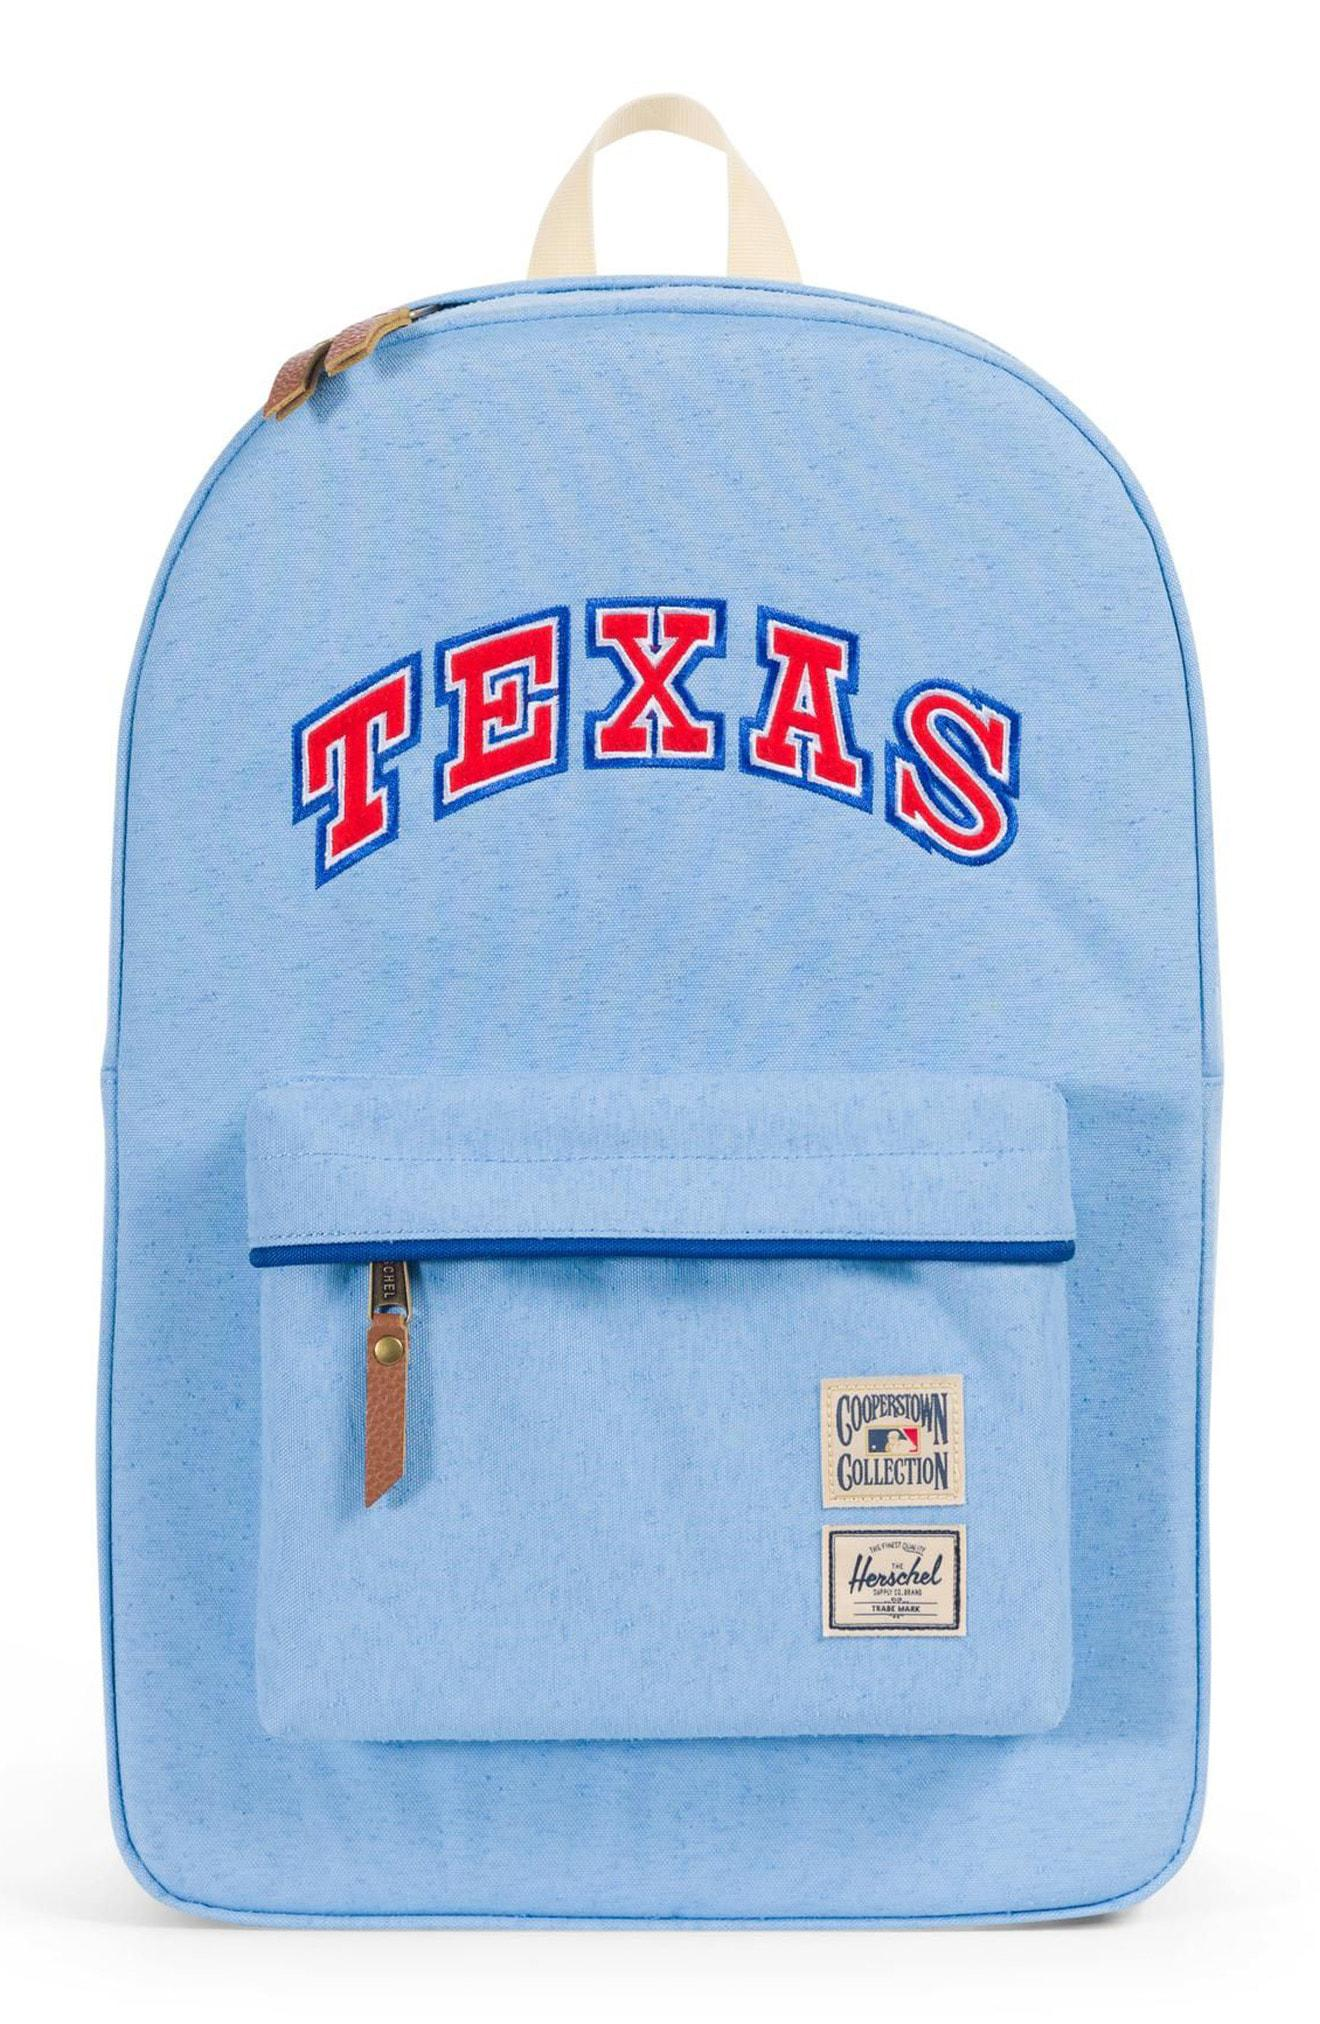 c6cae9b23721 Blue Heritage - Mlb Cooperstown Collection Backpack for Men - Lyst. View  fullscreen